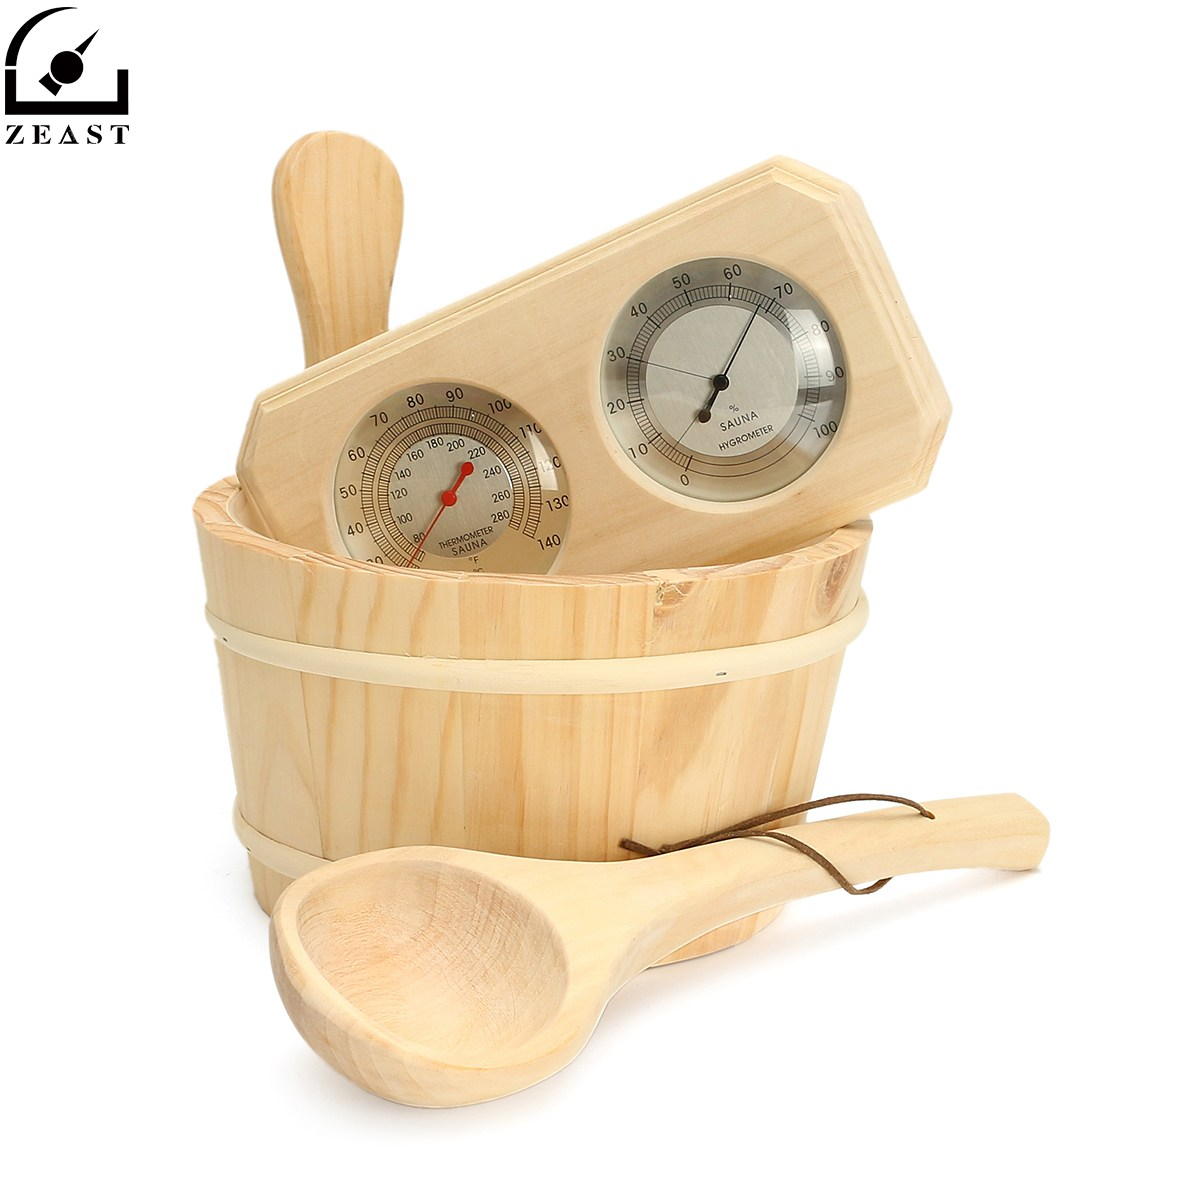 Thermometer Hygrometer + Dipper + Bucket 3pcs/set Pine Wood Sauna Accessory Set 20-140C free shipping high quality sauna accessory cartoon design sauna equipment thermometer hygrometer